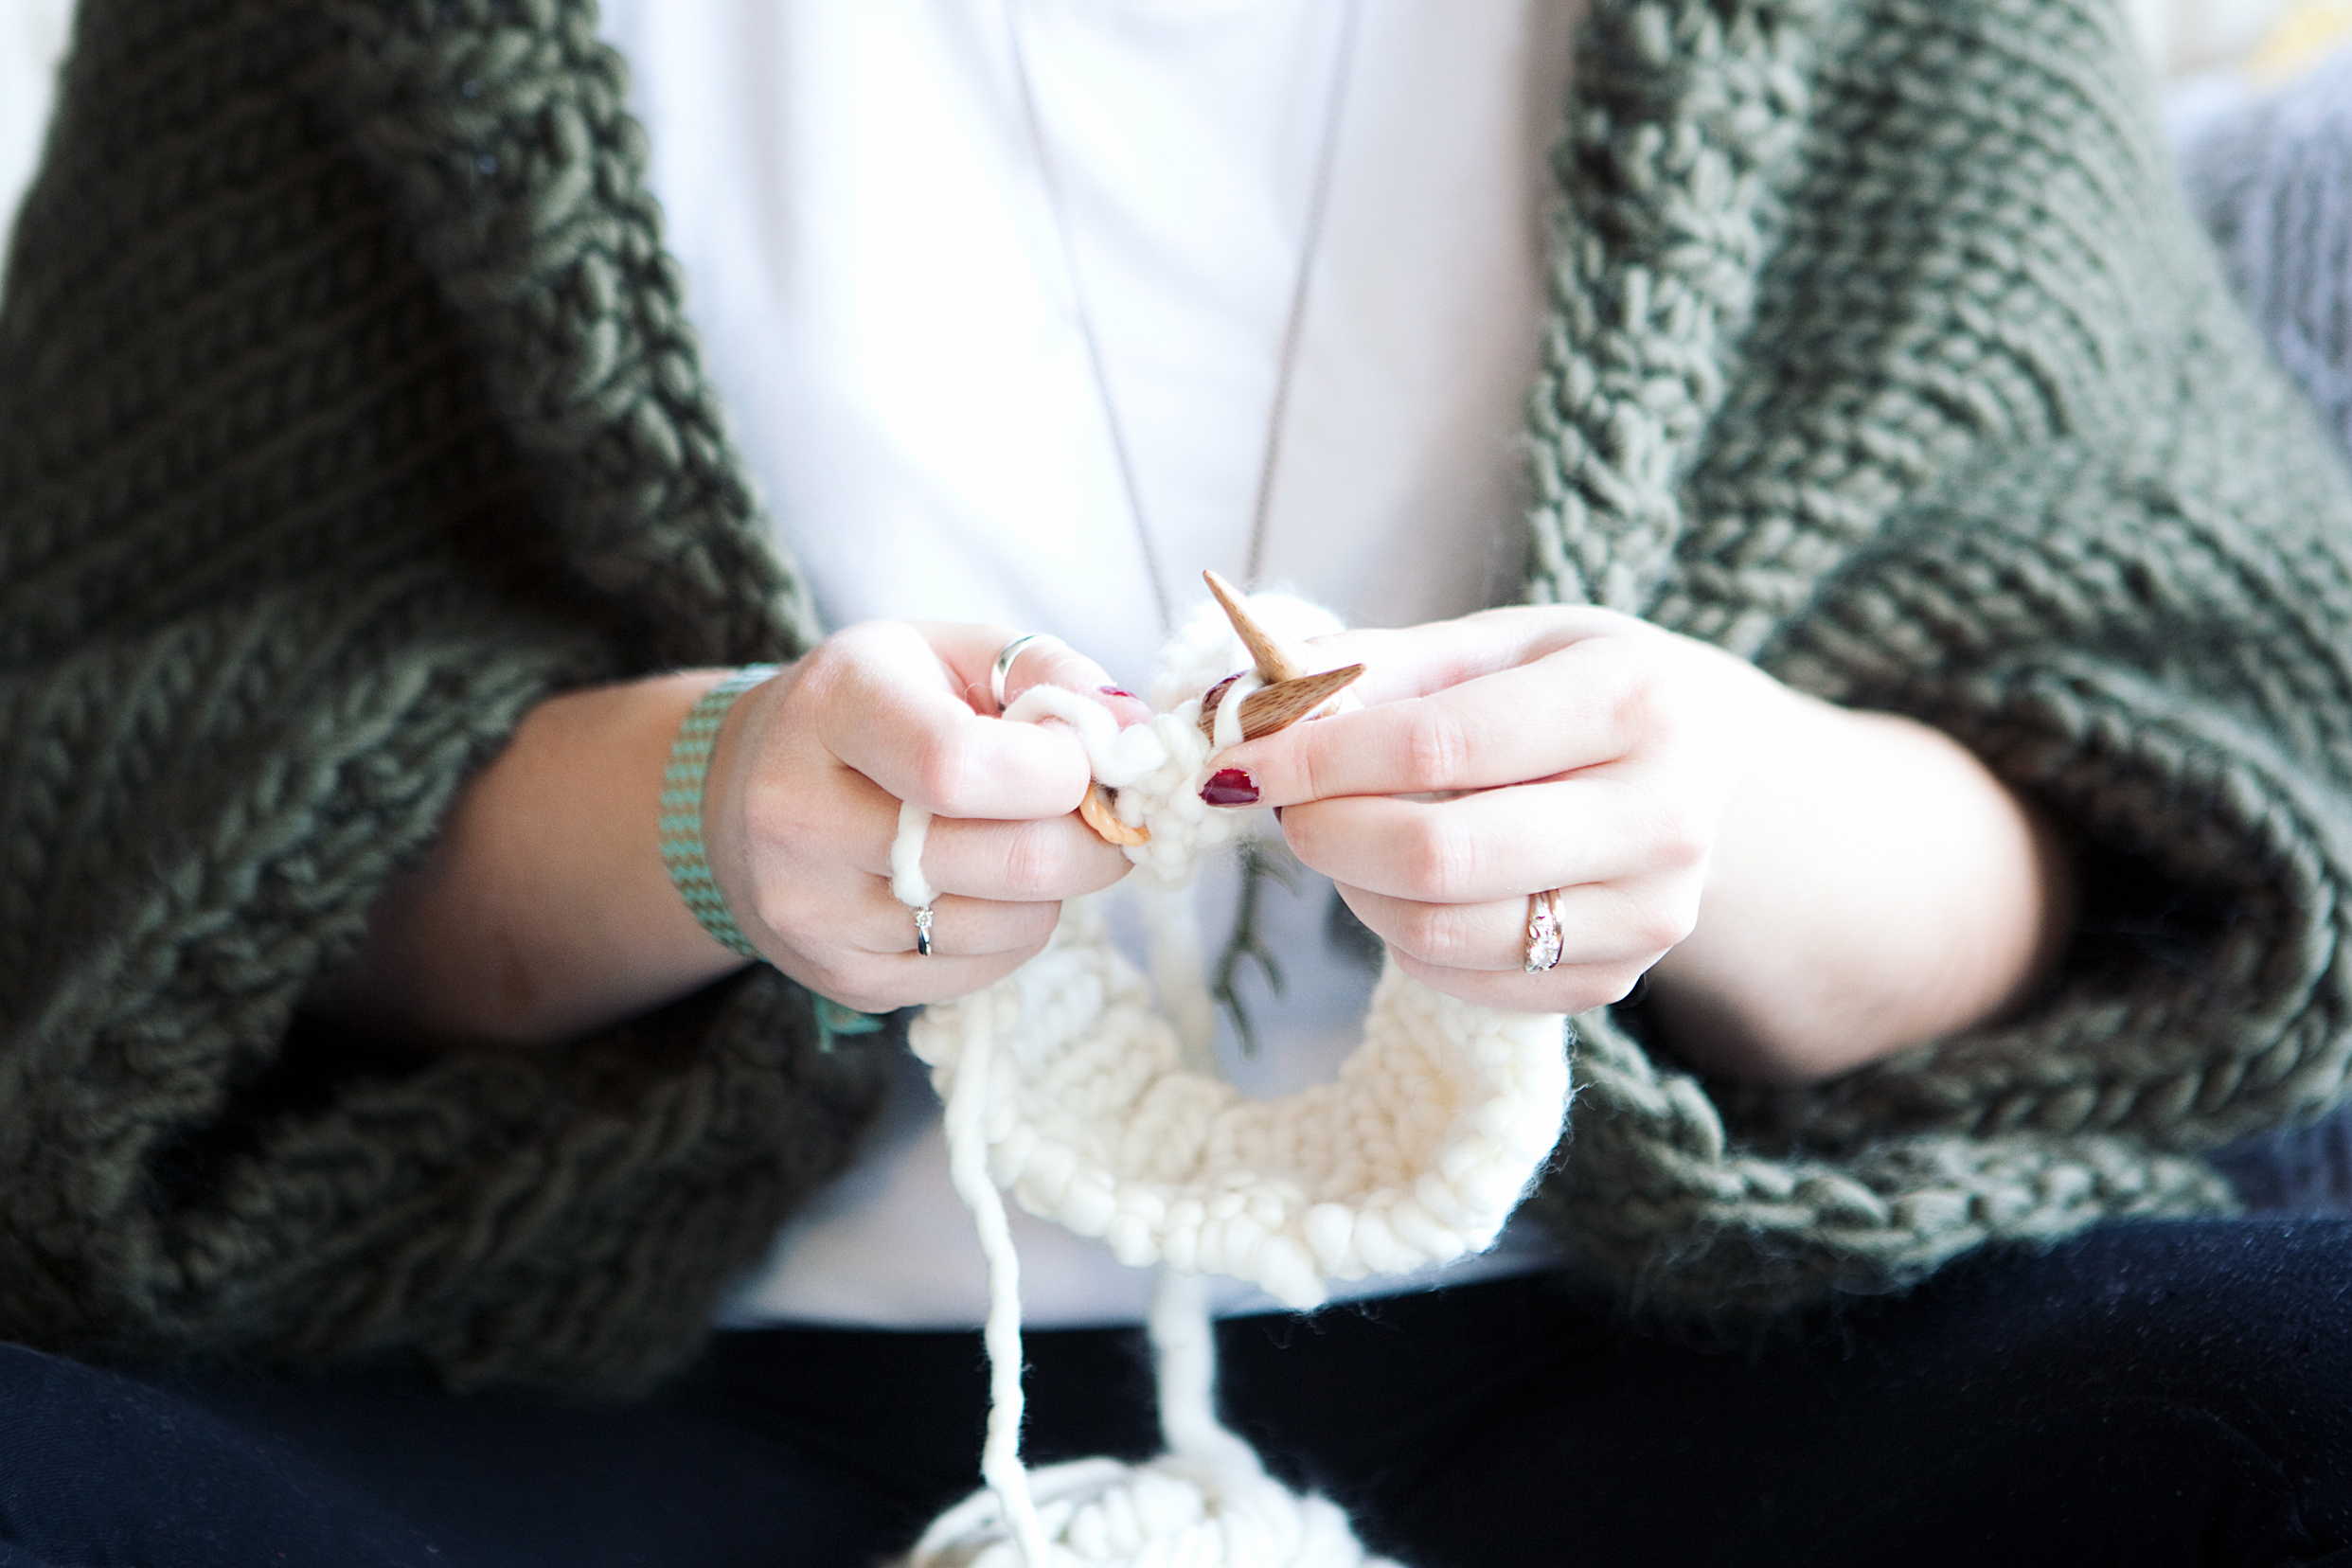 makers-in-the-raw-knitatude-68715w